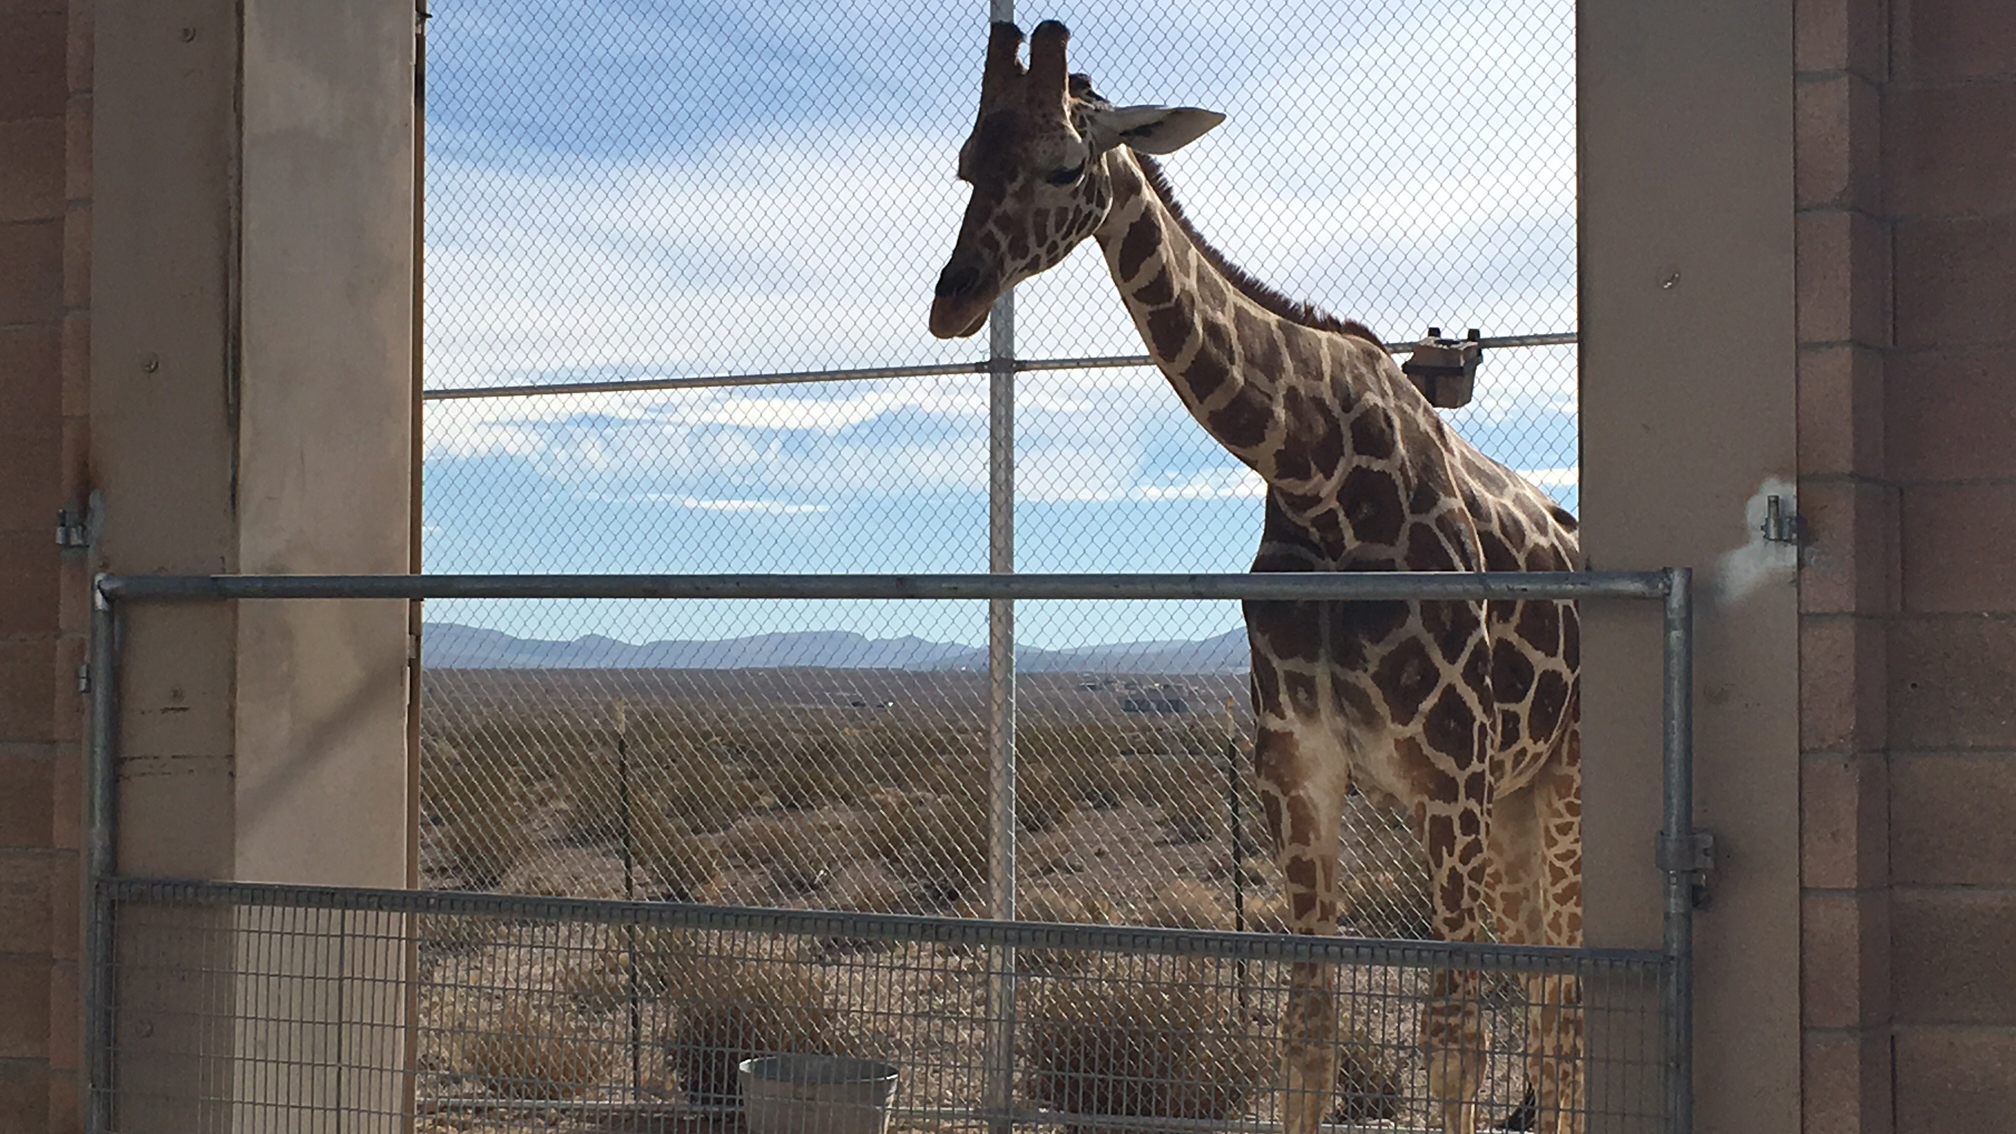 This week wildlife officials put giraffes on the list of threatened